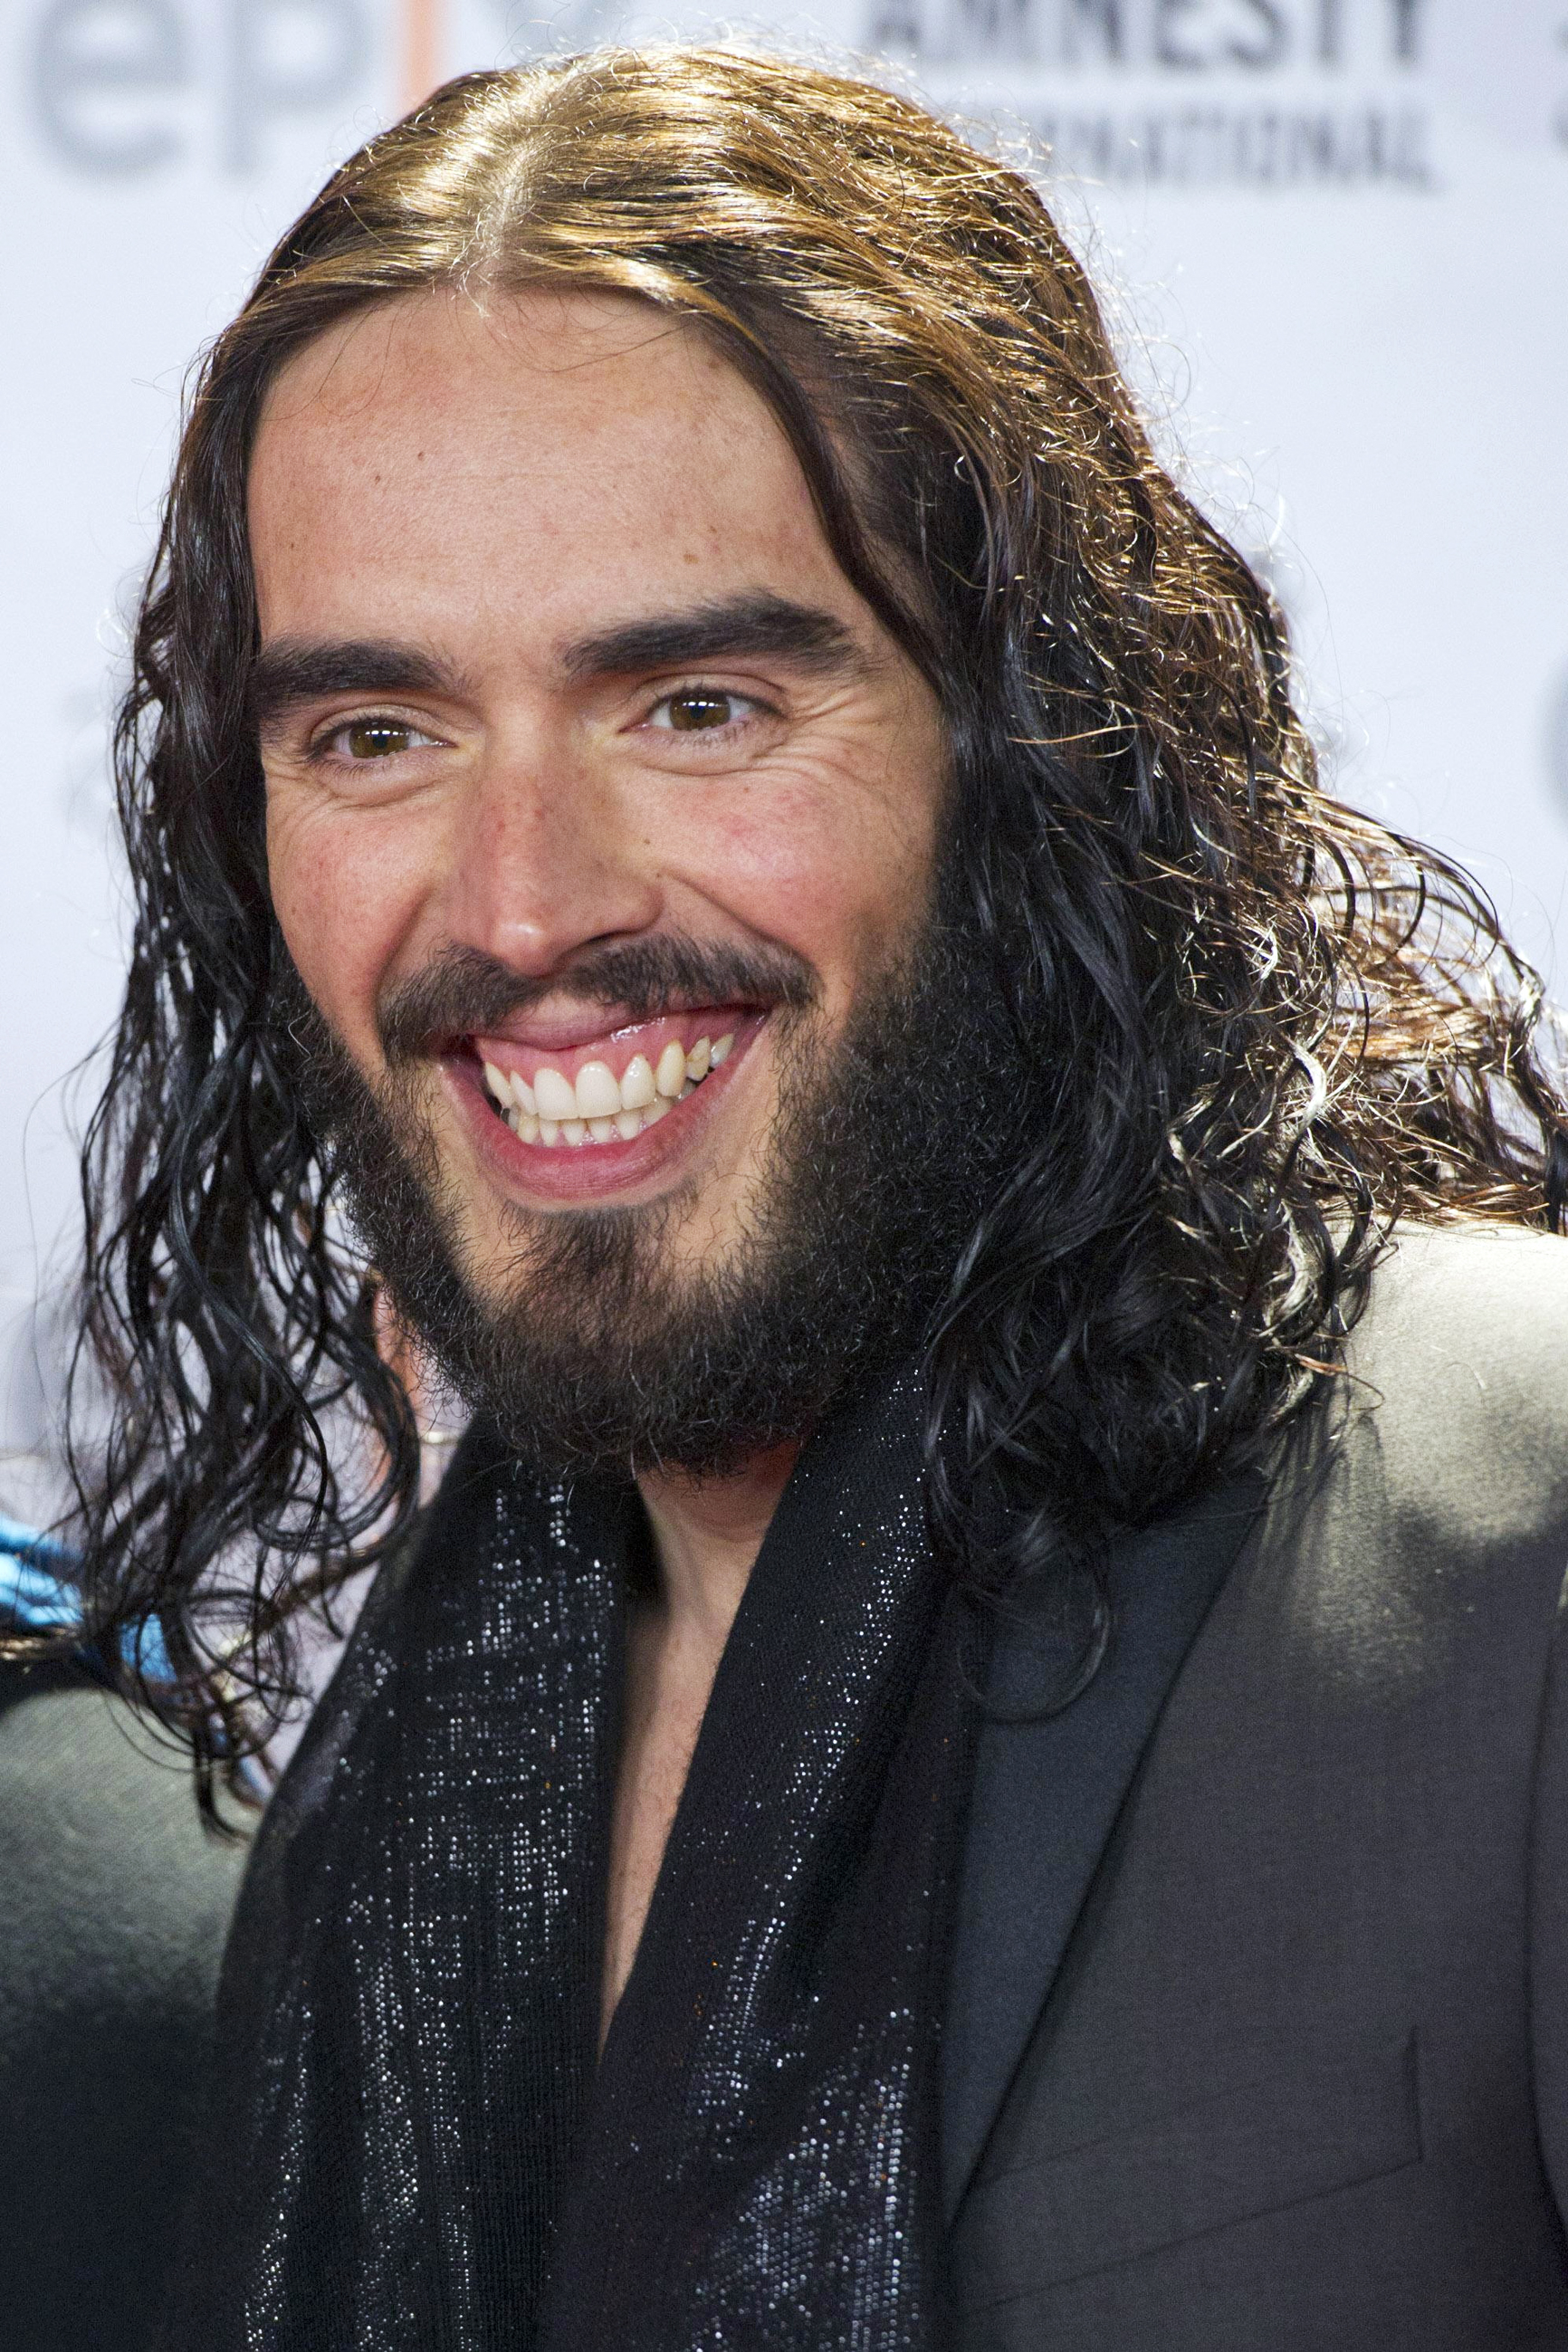 Yeovil Express: Russell Brand cancels Southend show due to illnesss